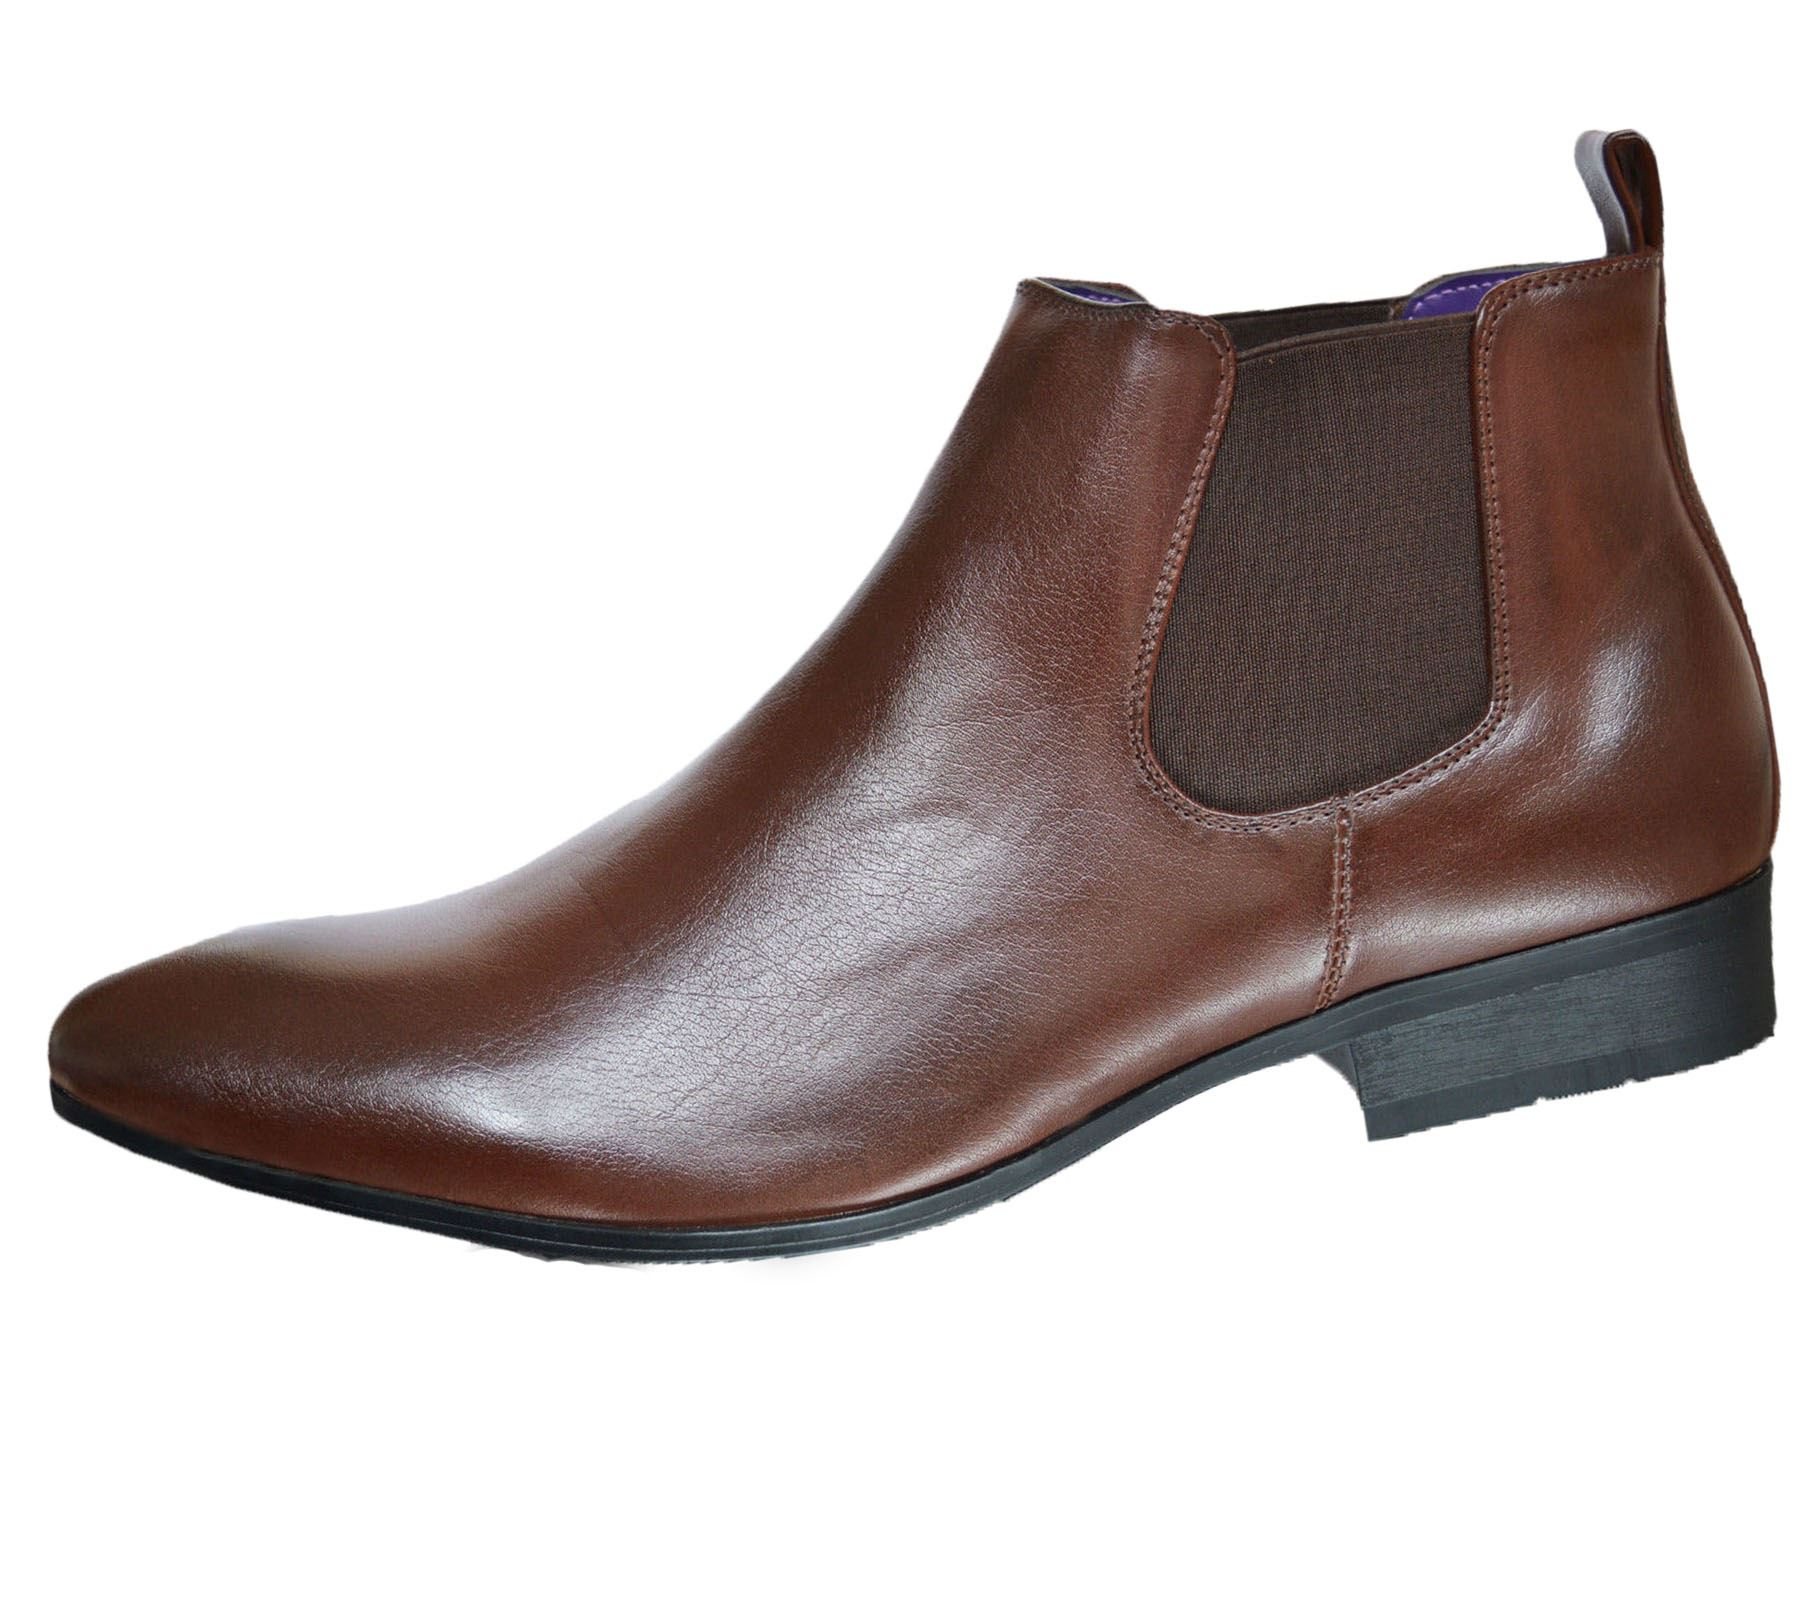 Mens-Chelsea-Boots-High-Top-Gusset-Synthetic-Leather-Shoes thumbnail 9